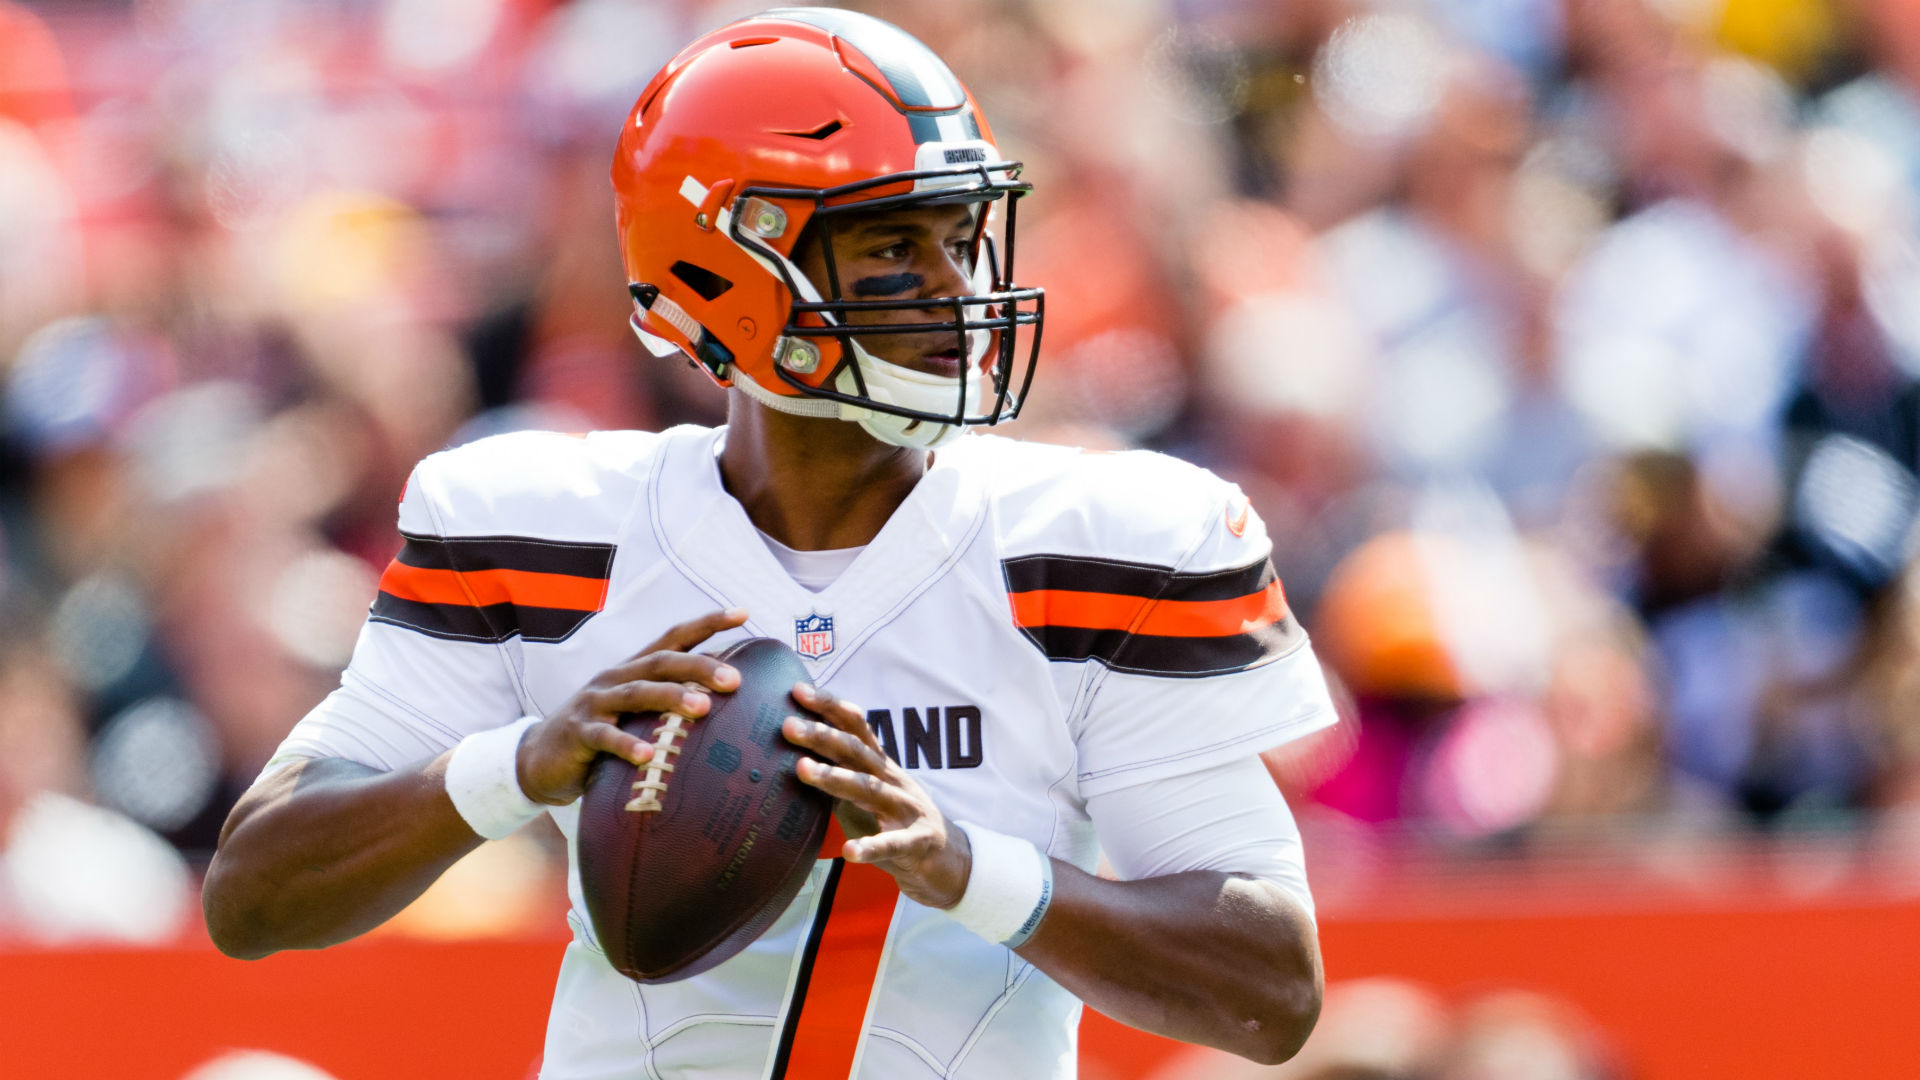 DeShone Kizer plays vs. the Steelers he wishes he had back